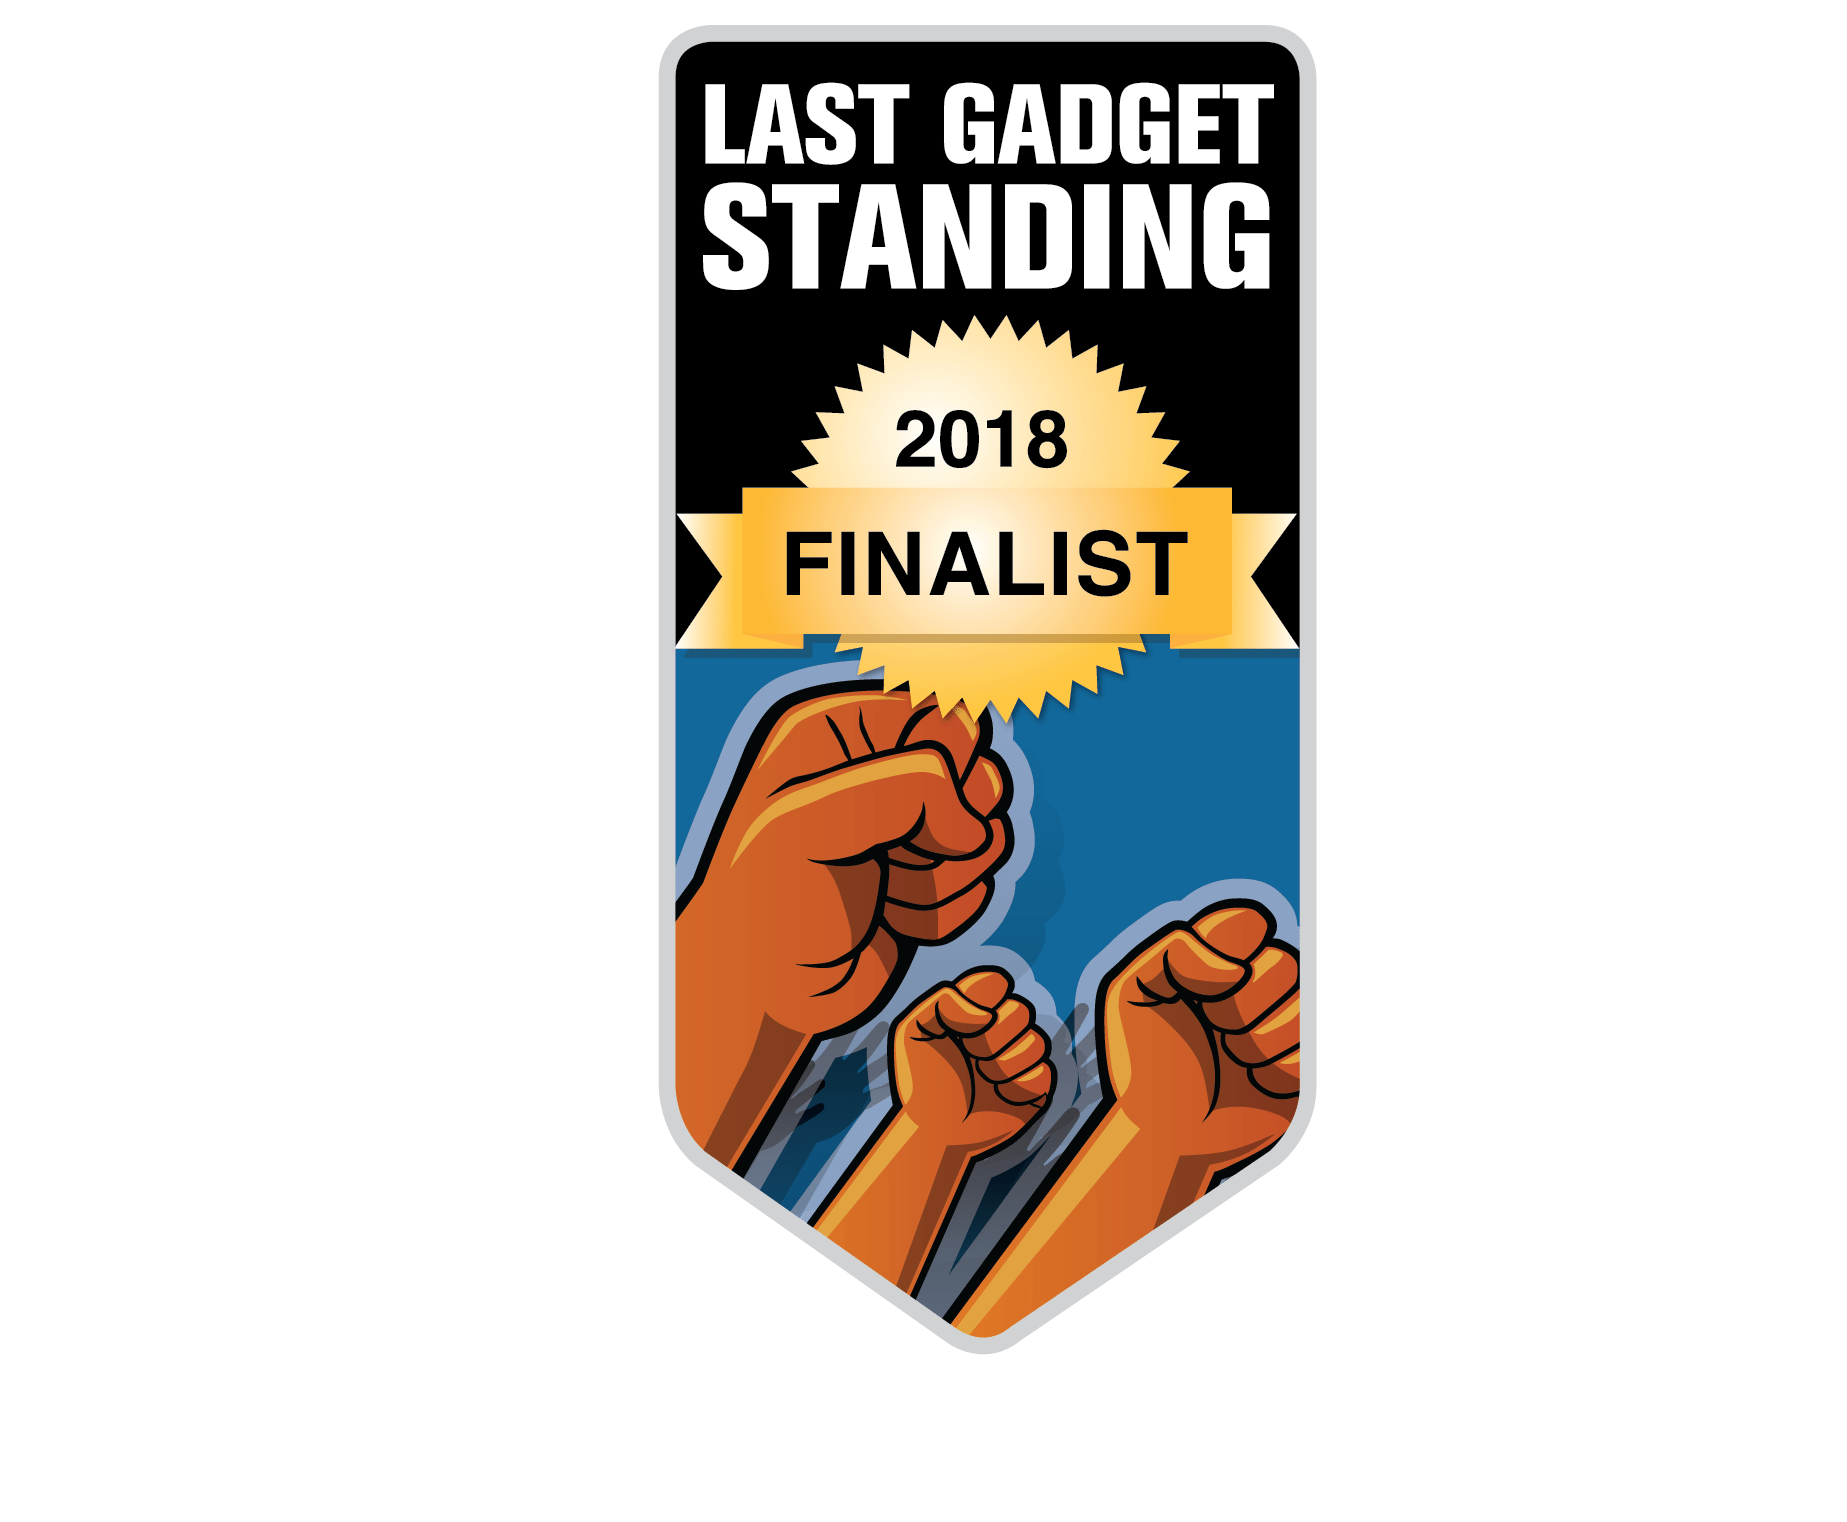 GoSilent Competes As Finalist In 2018 Last Gadget Standing Competition featured image